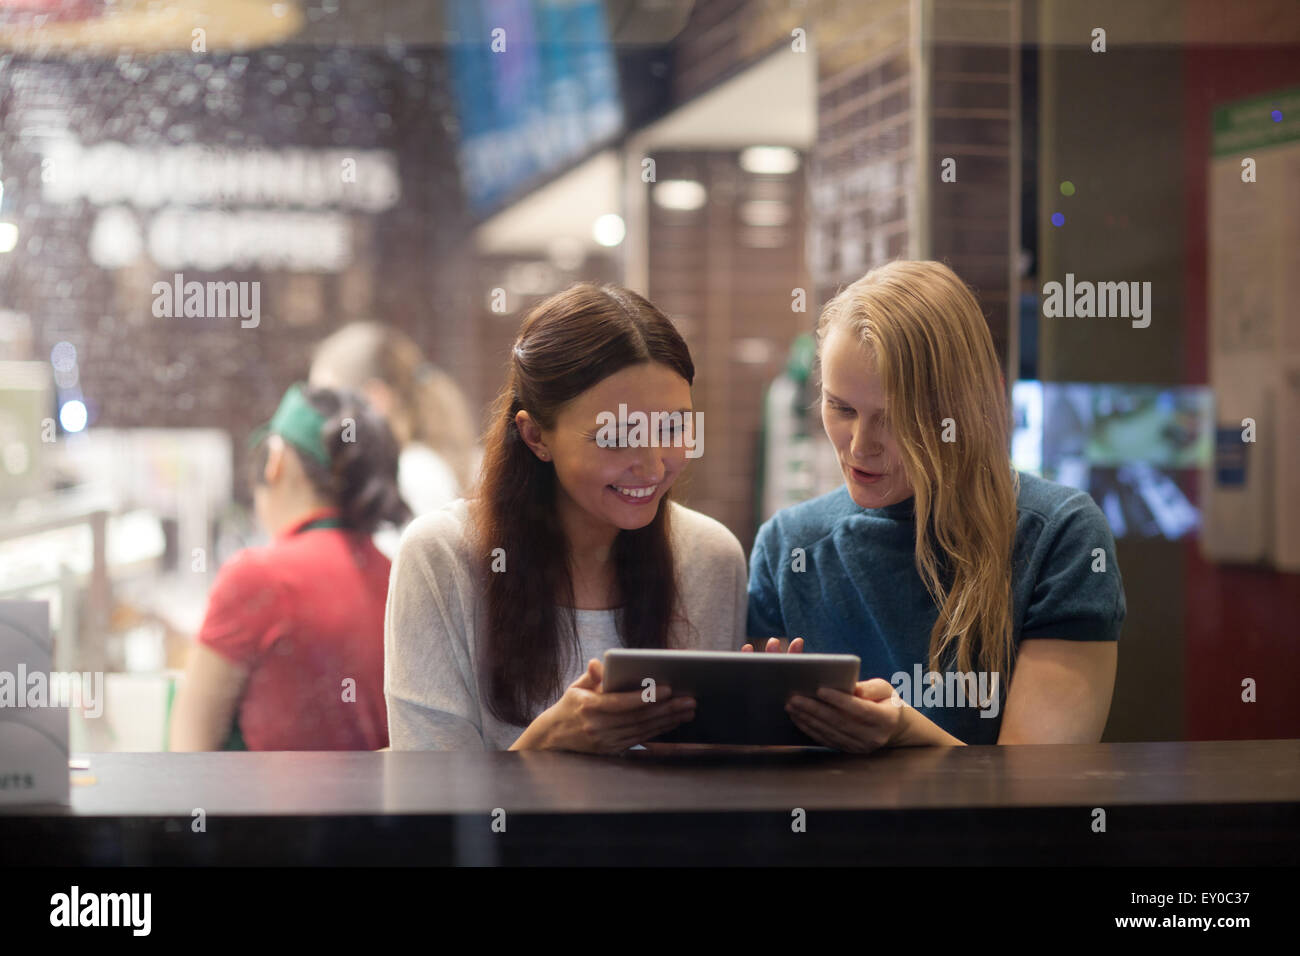 Two women talk cheerfully in the restaurant using electronic tablet - Stock Image